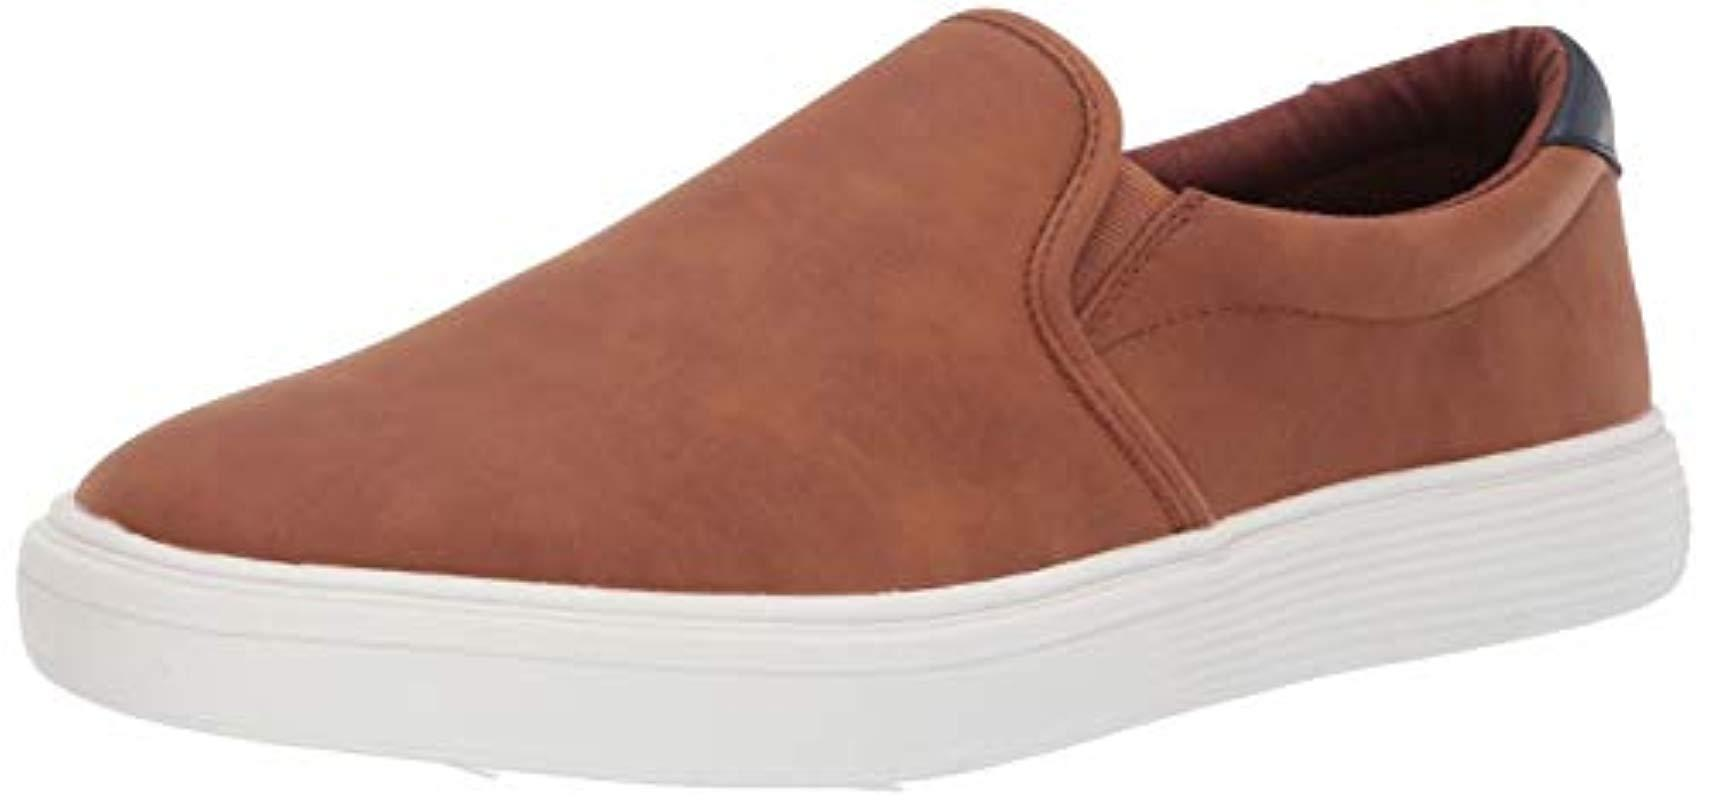 3975bea57c0a8 Lyst - Tommy Hilfiger Oda Sneaker in Brown for Men